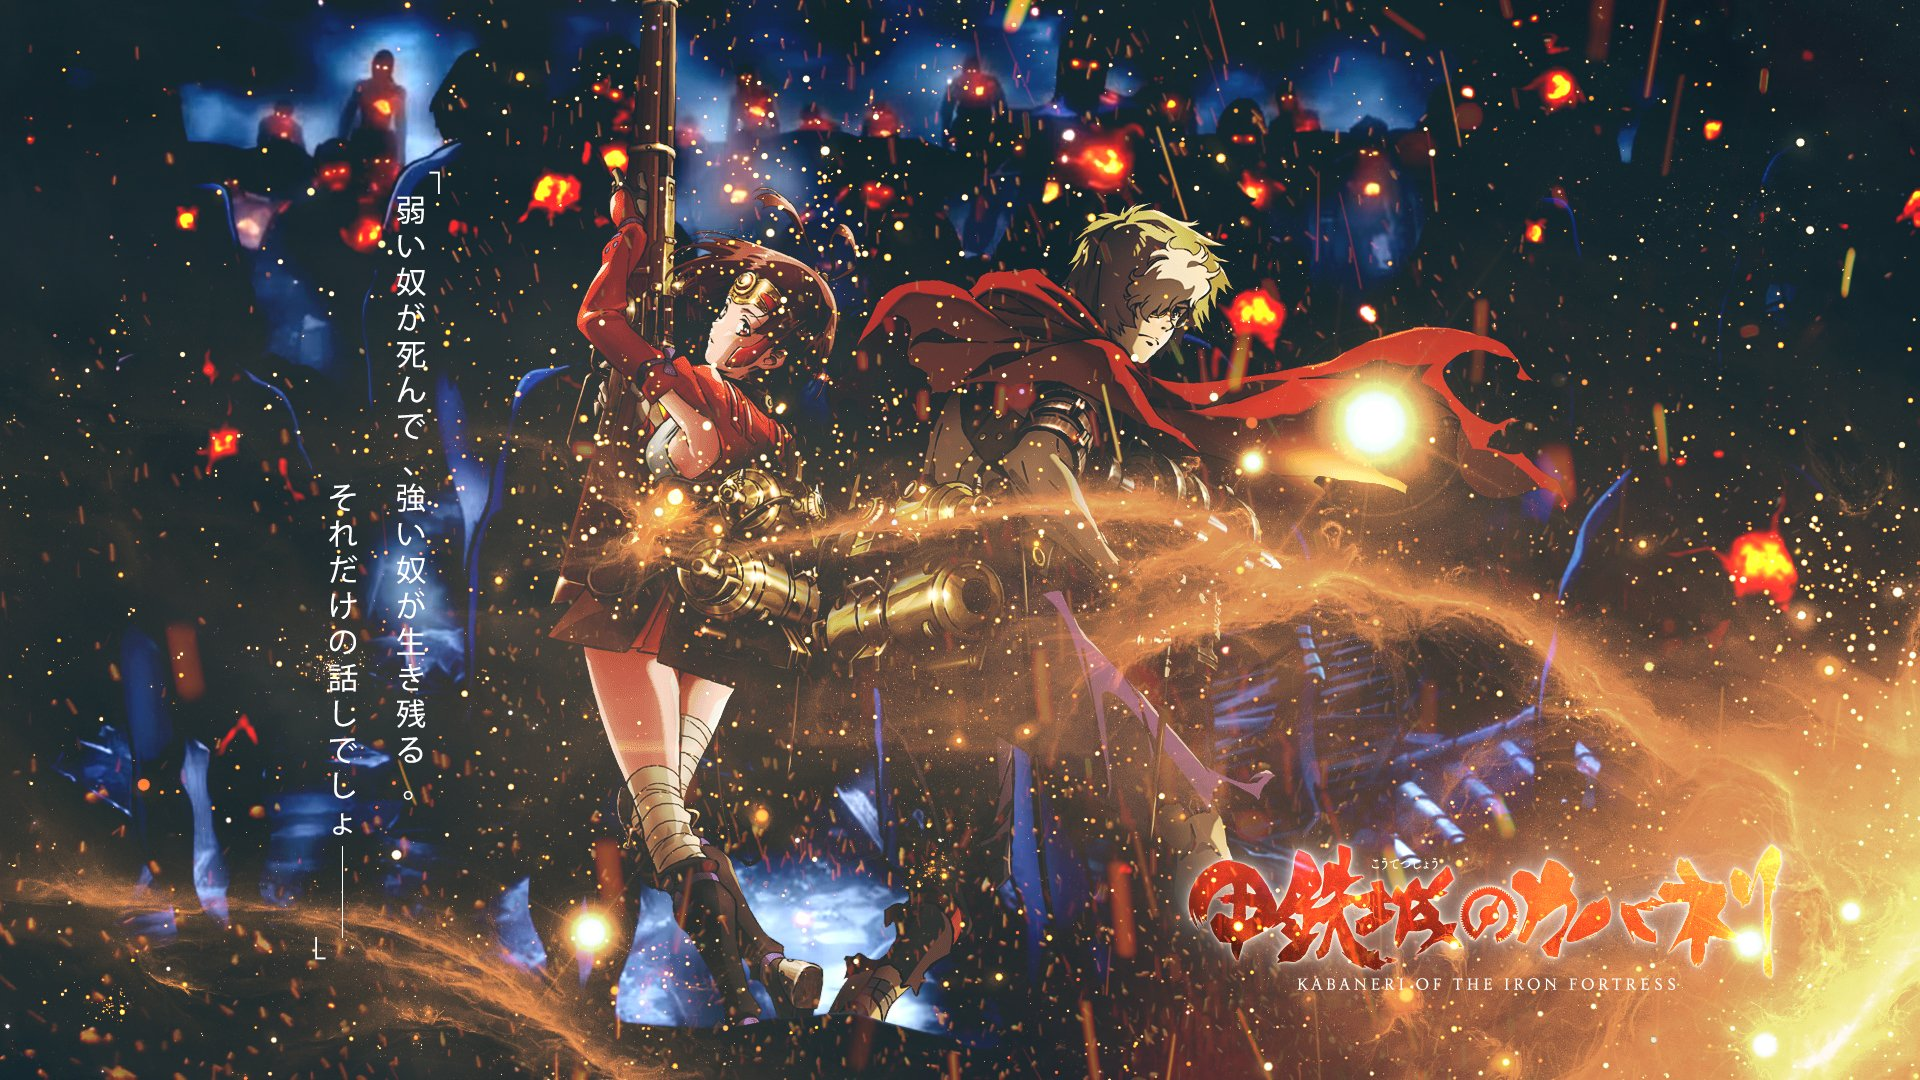 Anime Wallpapers Koutetsujou no Kabaneri HD 4K Download For Mobile iPhone & PC